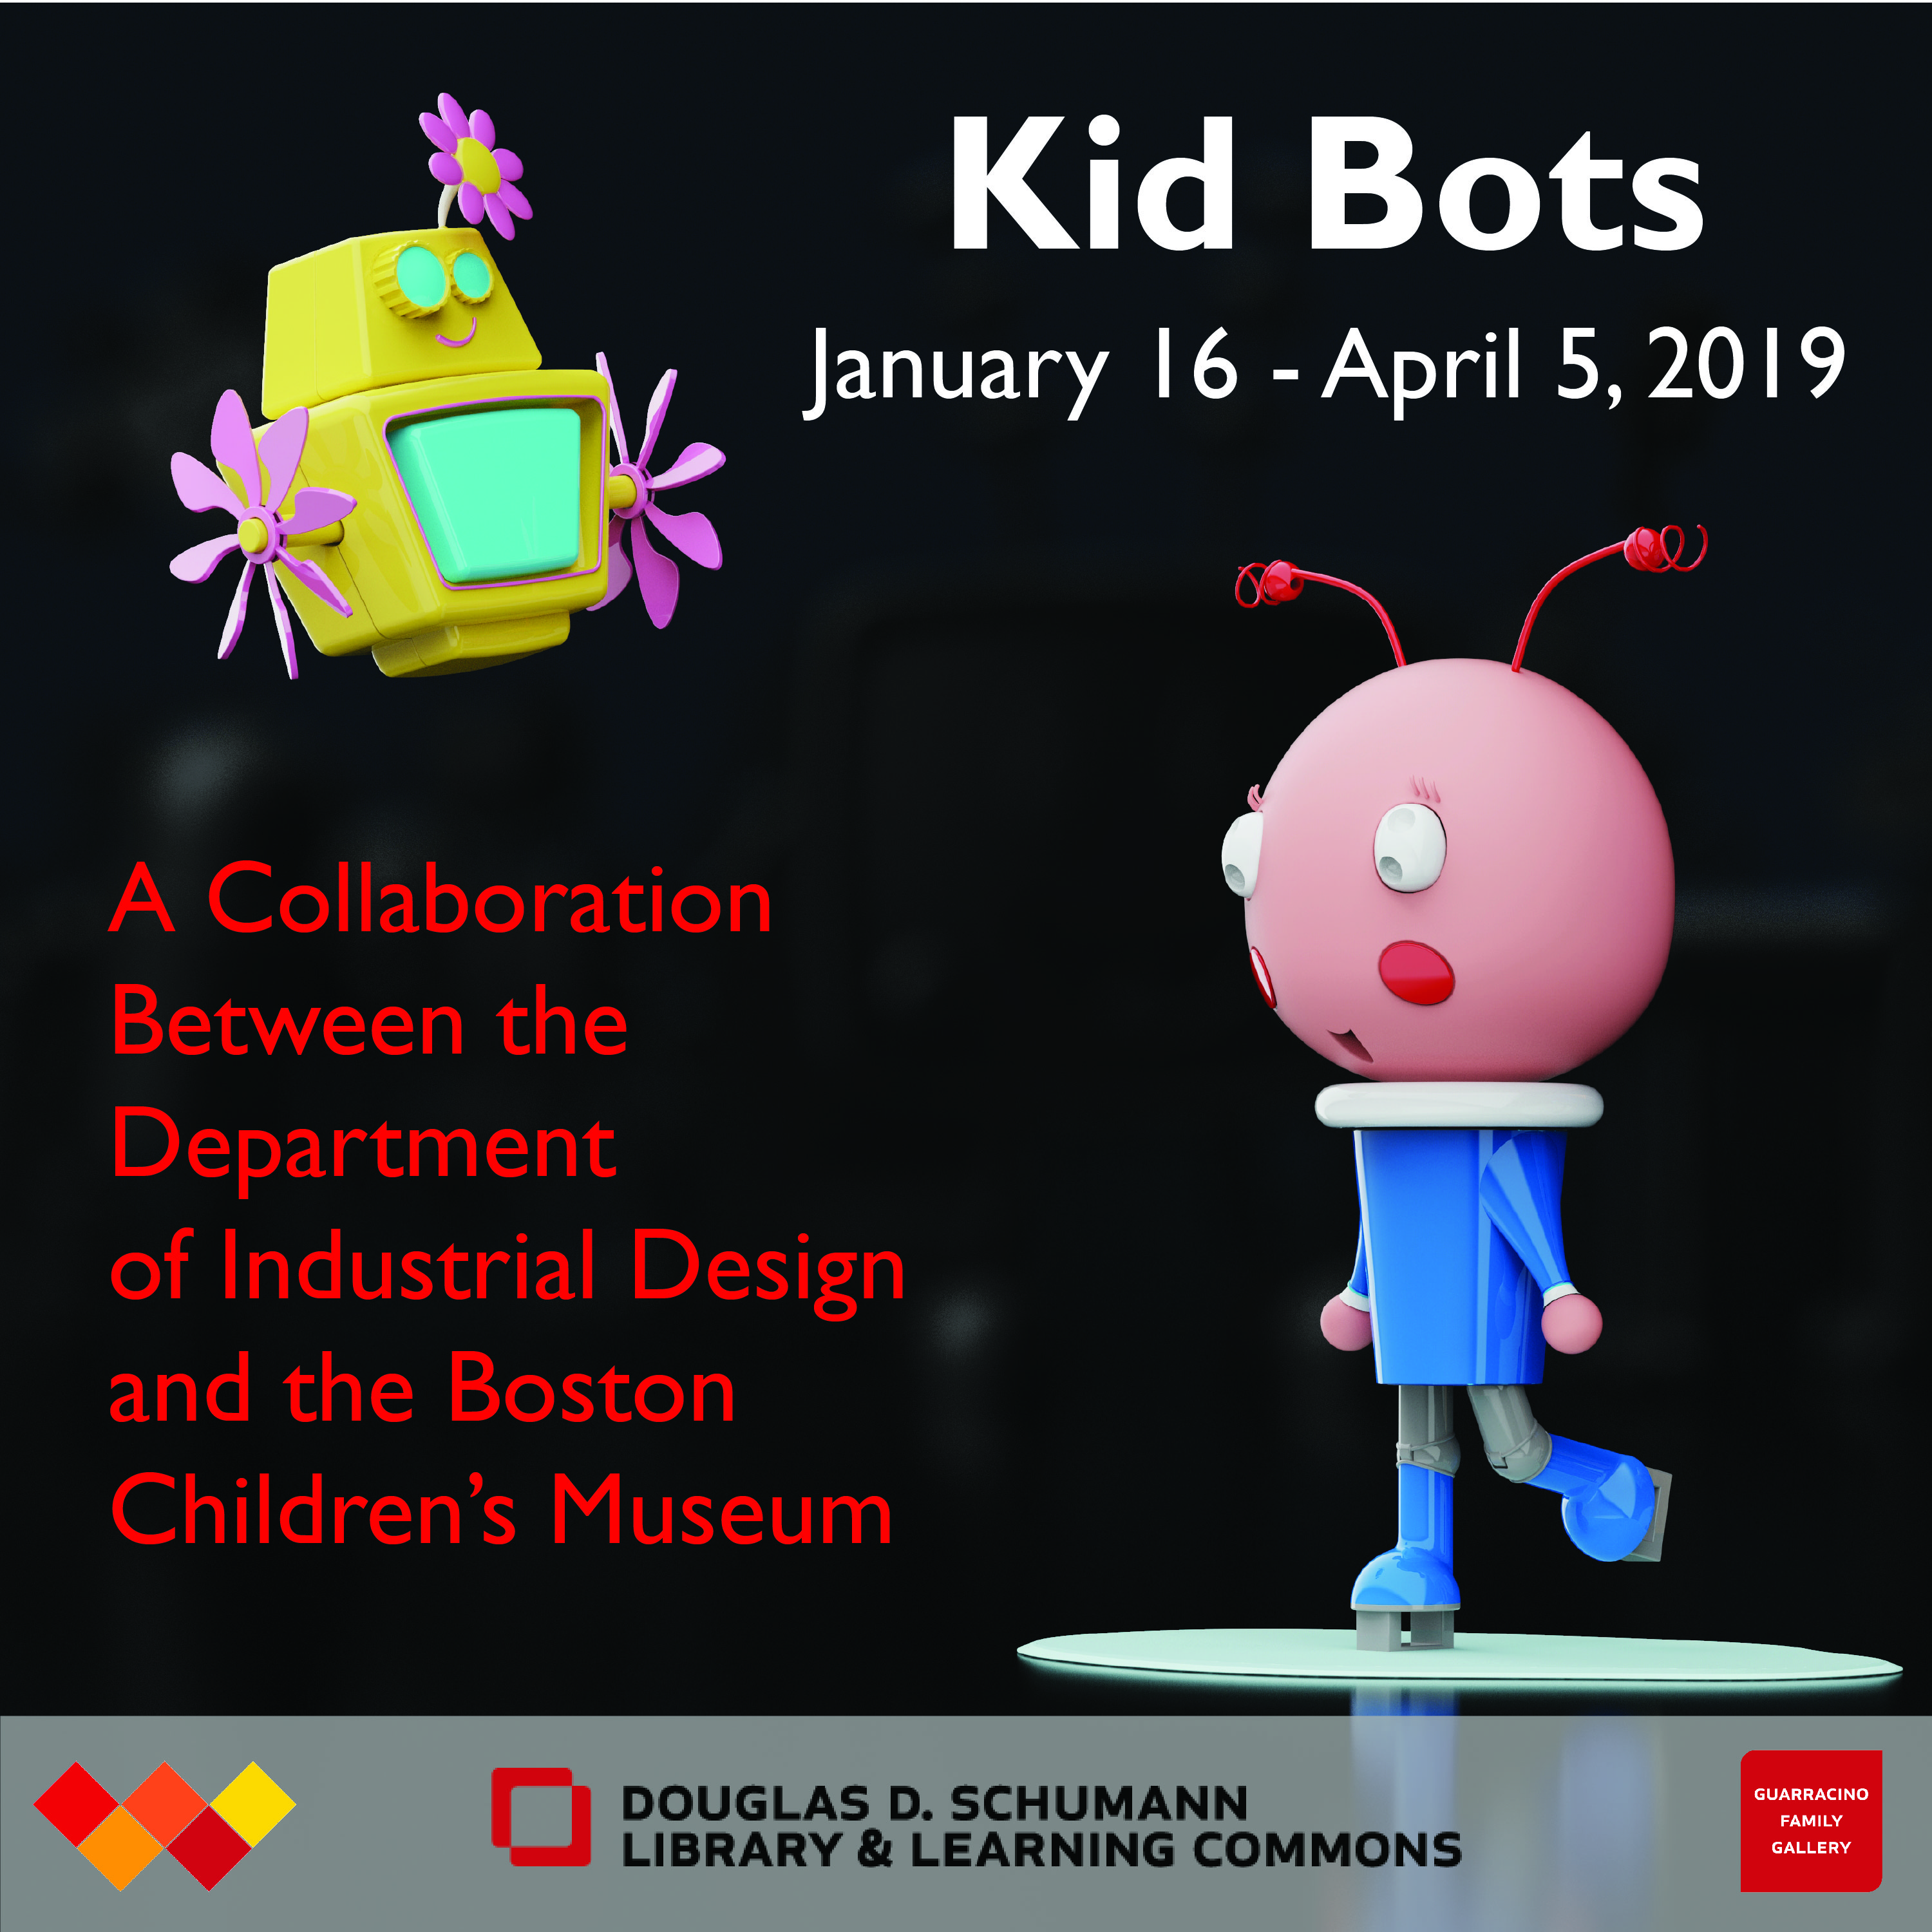 Kid Bots - January 16 - April 5, 2019 - A collaboration between the department of industrial design and the Boston Children's Museum